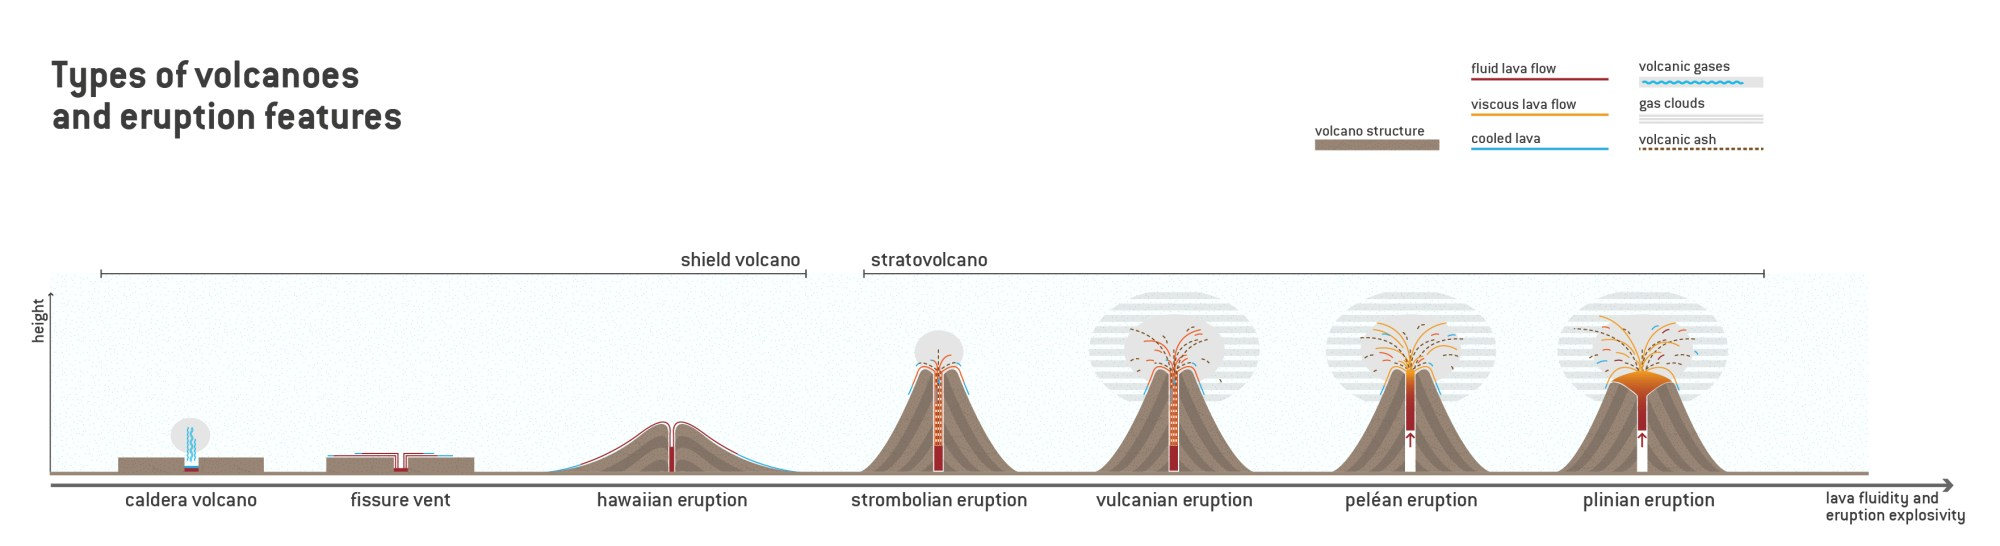 hight resolution of the image correlates types of volcanoes with their respective eruption highlighting the differences